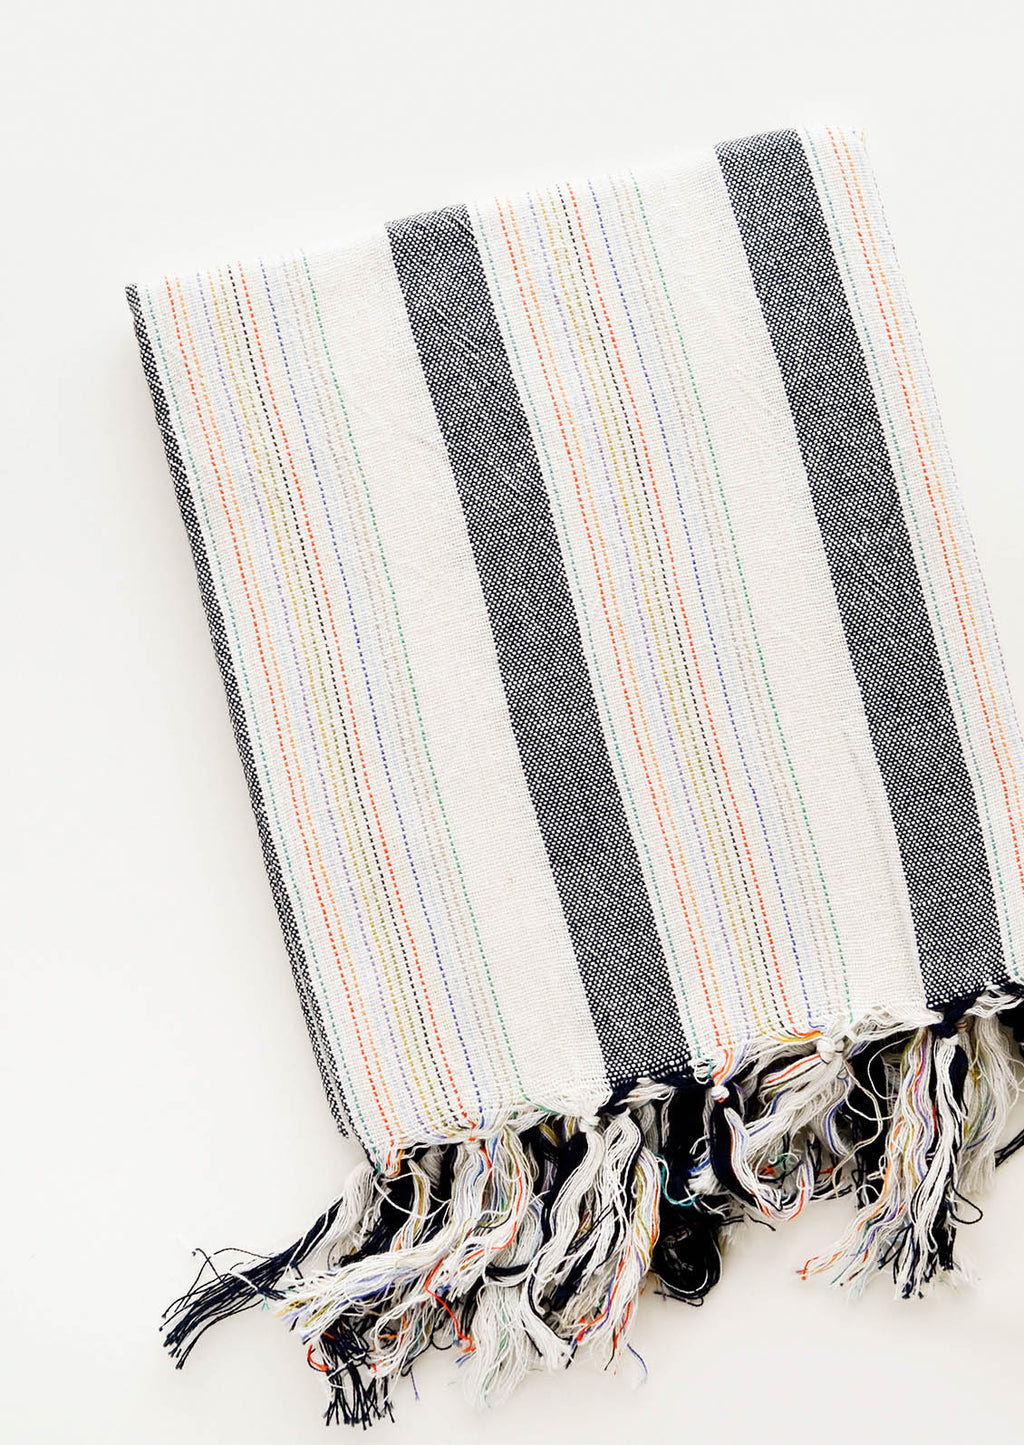 1: Cotton Turkish Towel in Natural & Charcoal with Rainbow Colored Stitching and Fringed Tassel Trim